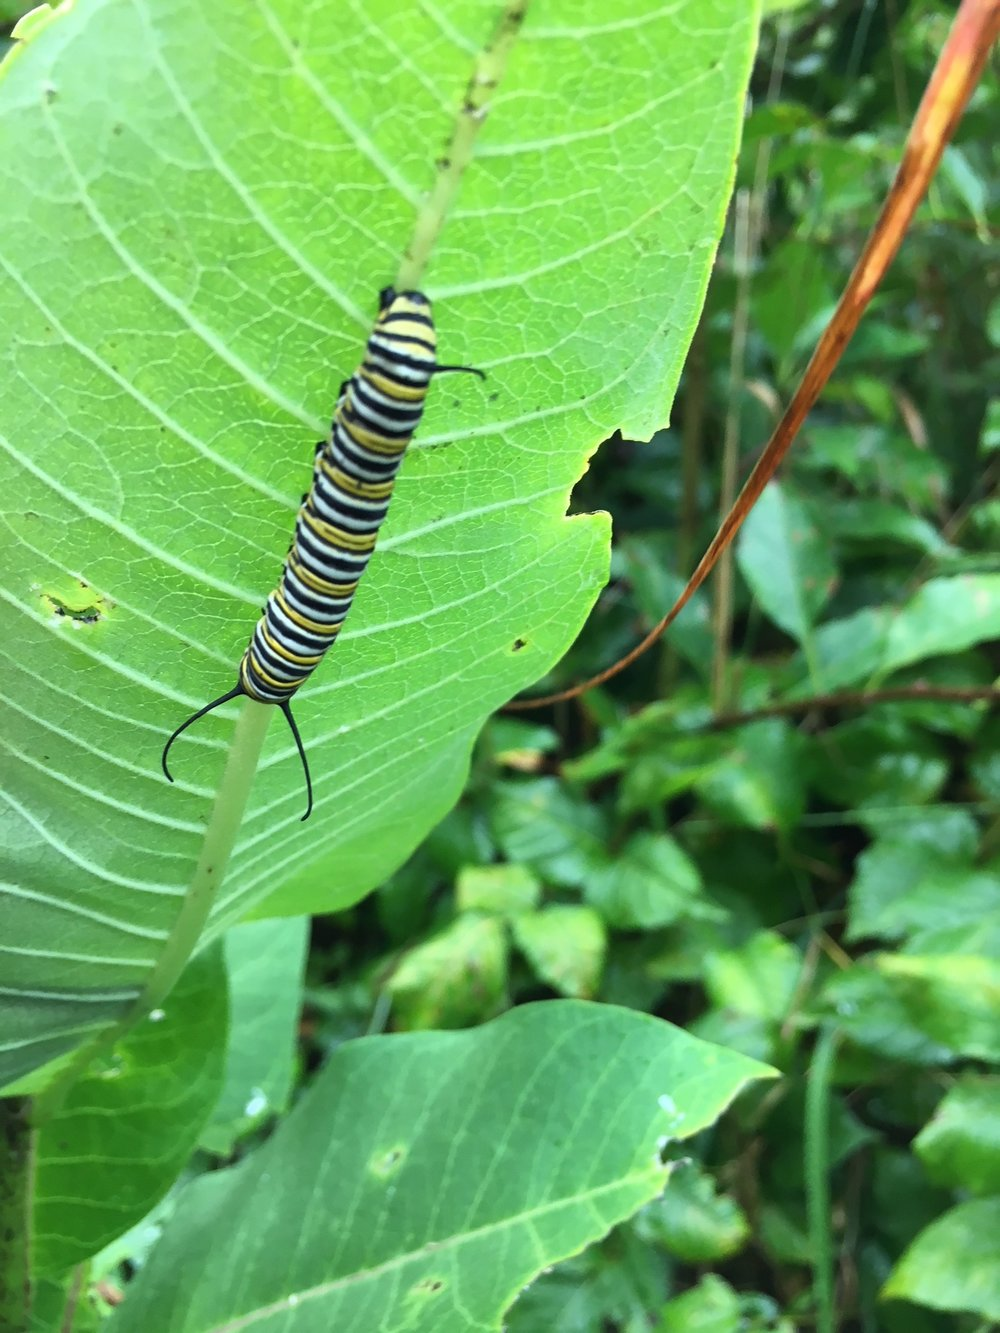 Monarch caterpillar!